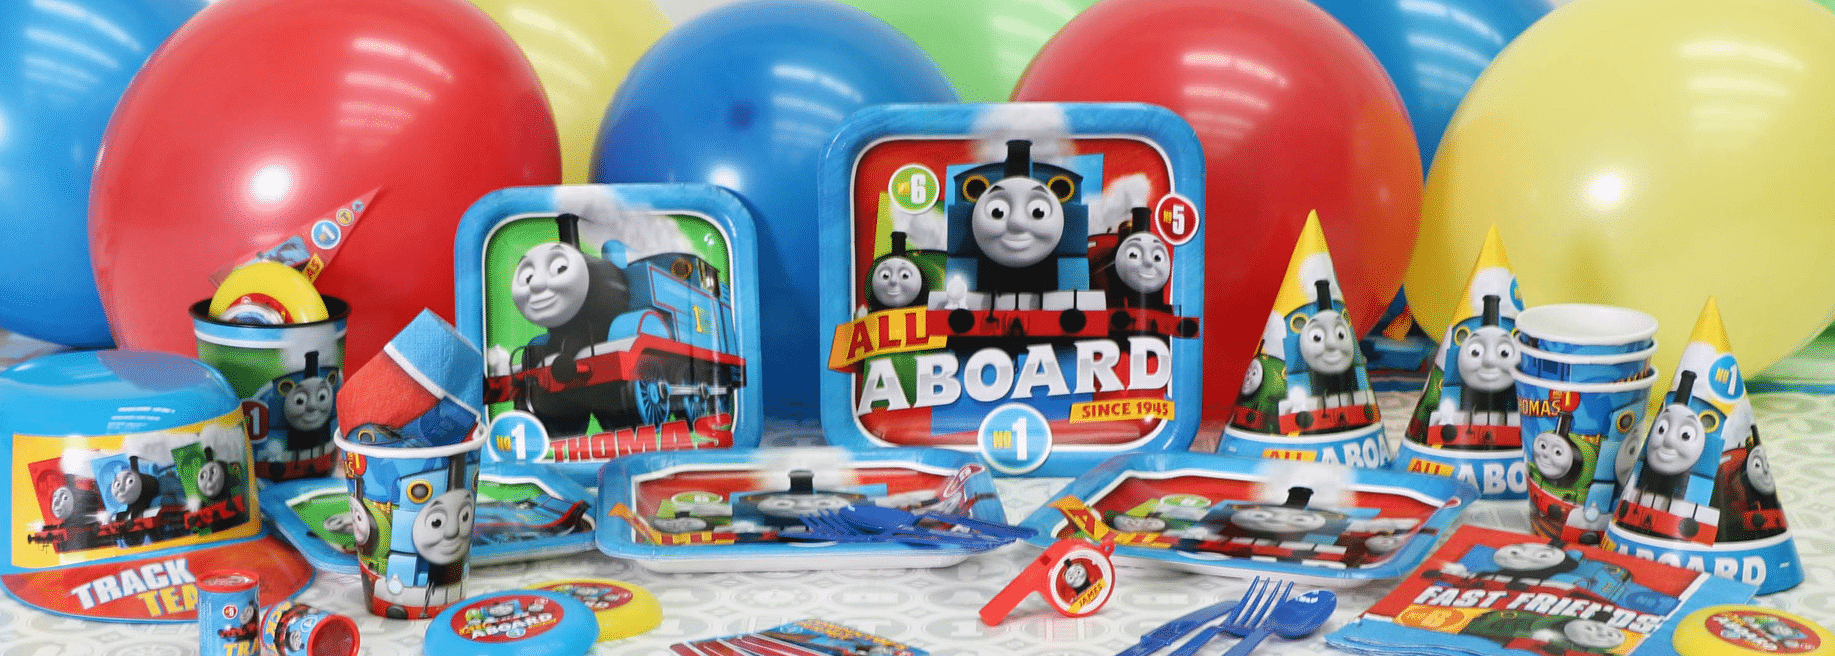 Thomas The Tank Engine themed party supplies, Thomas Party decorations & balloons next day delivery